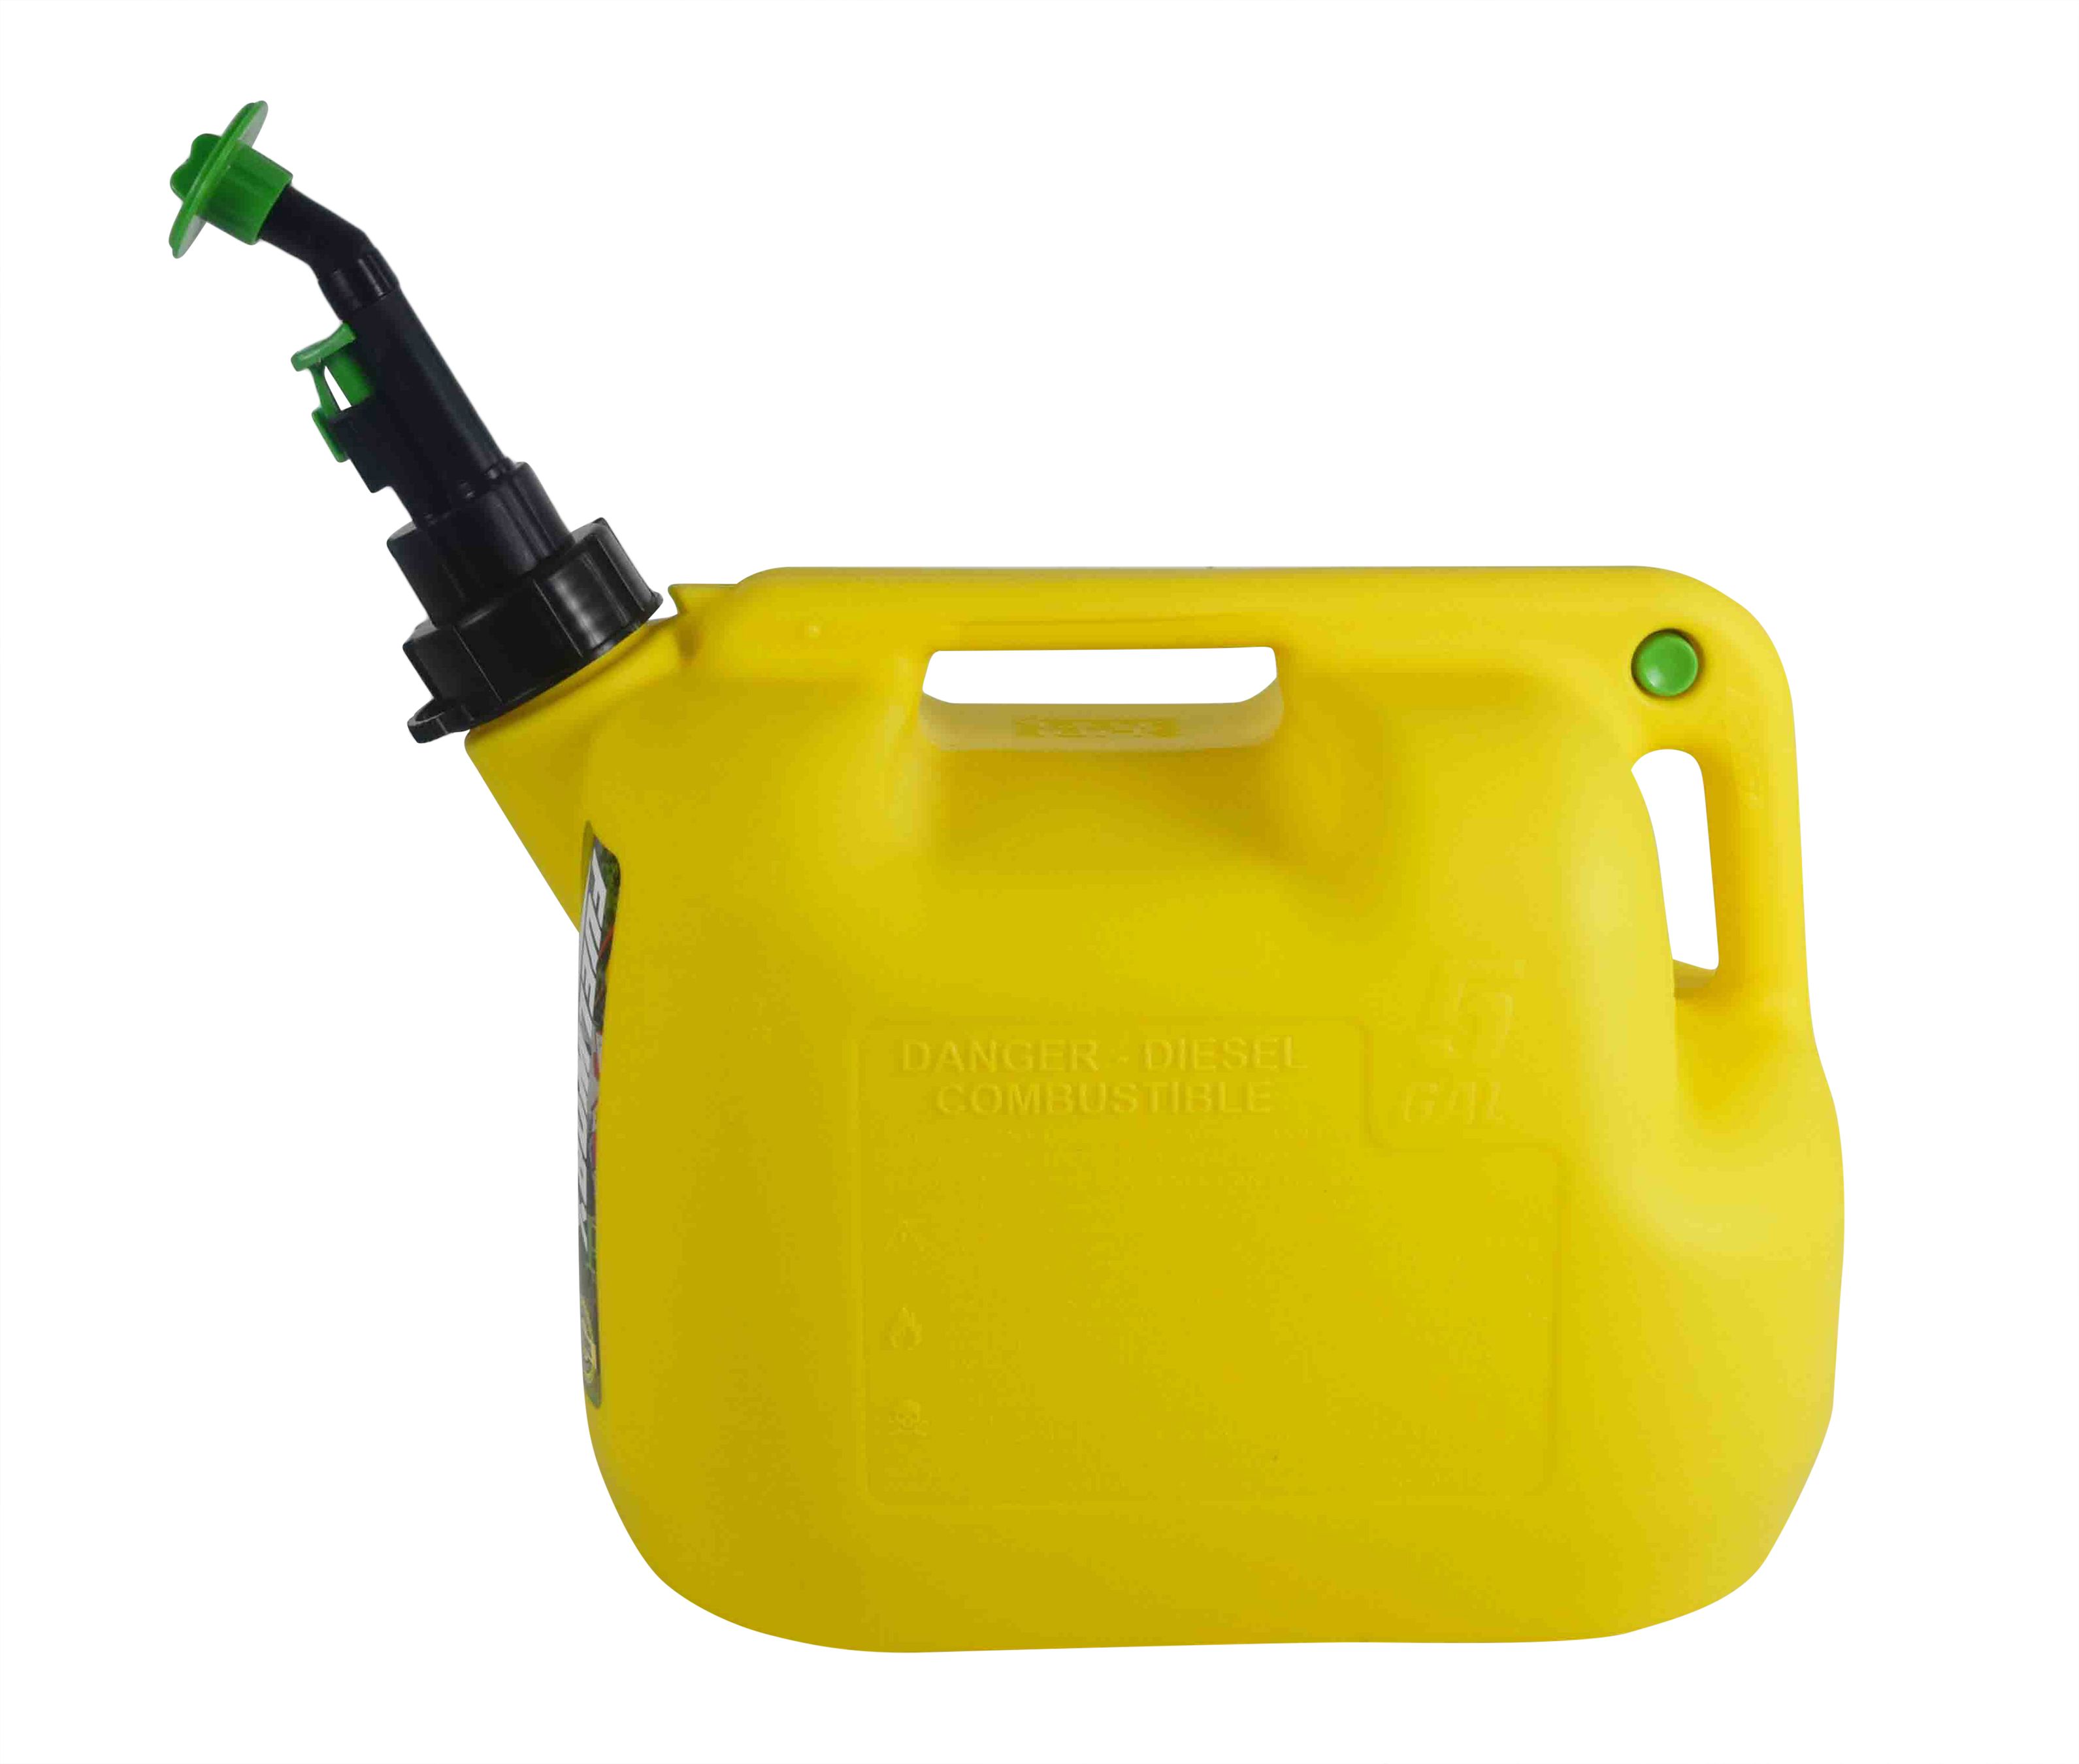 Fuelworx-Yellow-5-Gallon-Stackable-Fast-Pour-Diesel-Fuel-Cans-CARB-Compliant-Made-in-The-USA-5-Gallon-Diesel-Cans-2-Pack-image-3